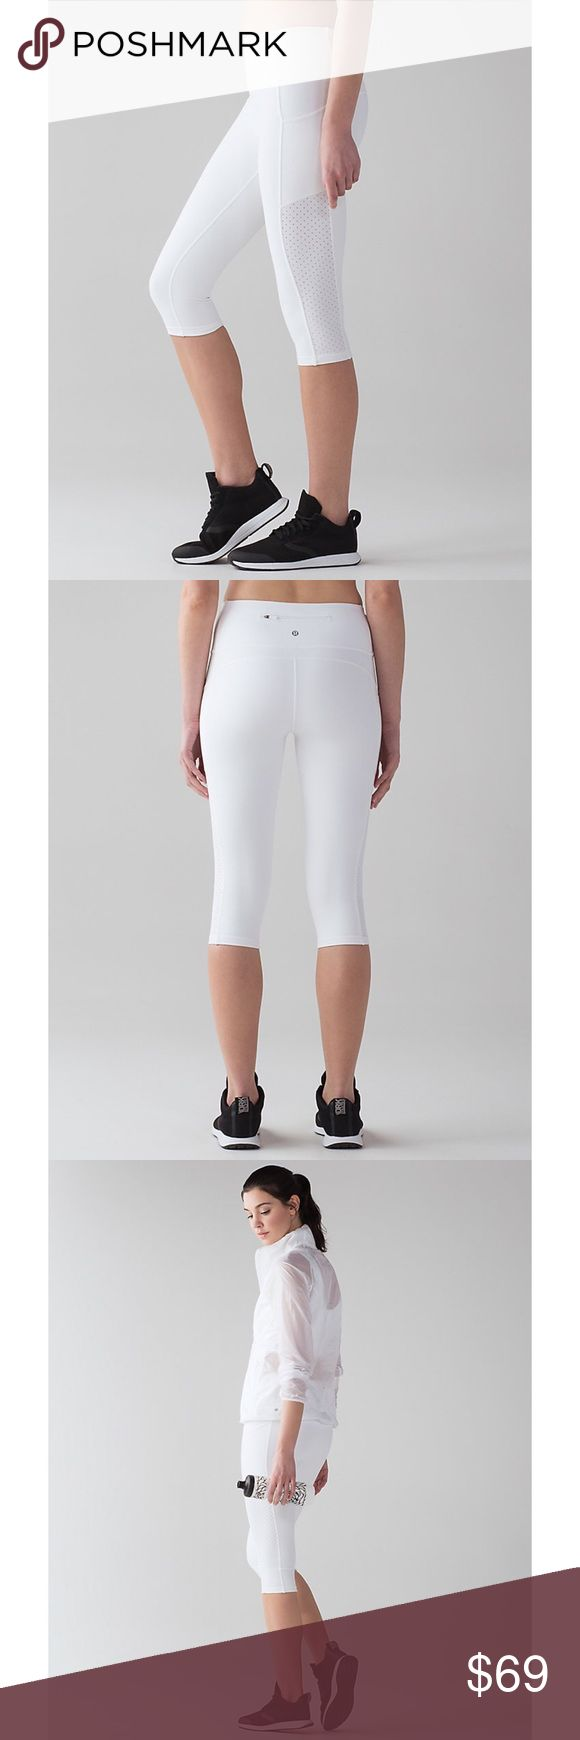 🏆 lululemon White Crop Legging 🏆 Perfect condition, like-new, never worn. Crop leggings w multiple pockets to hold a phone as large as an iPhone 7+. Sweat wicking Lycra Luxtreme fabric for shape, support, retention, and 4 way stretch w full coverage. High rise waistband to keep you covered front to back.  Smoke and pet free home. Interested? Make an offer! Willing to do transactions via Venmo or 🅿️aypal to save you money on shipping costs! Feel free to follow me on Instagram @elechicool…